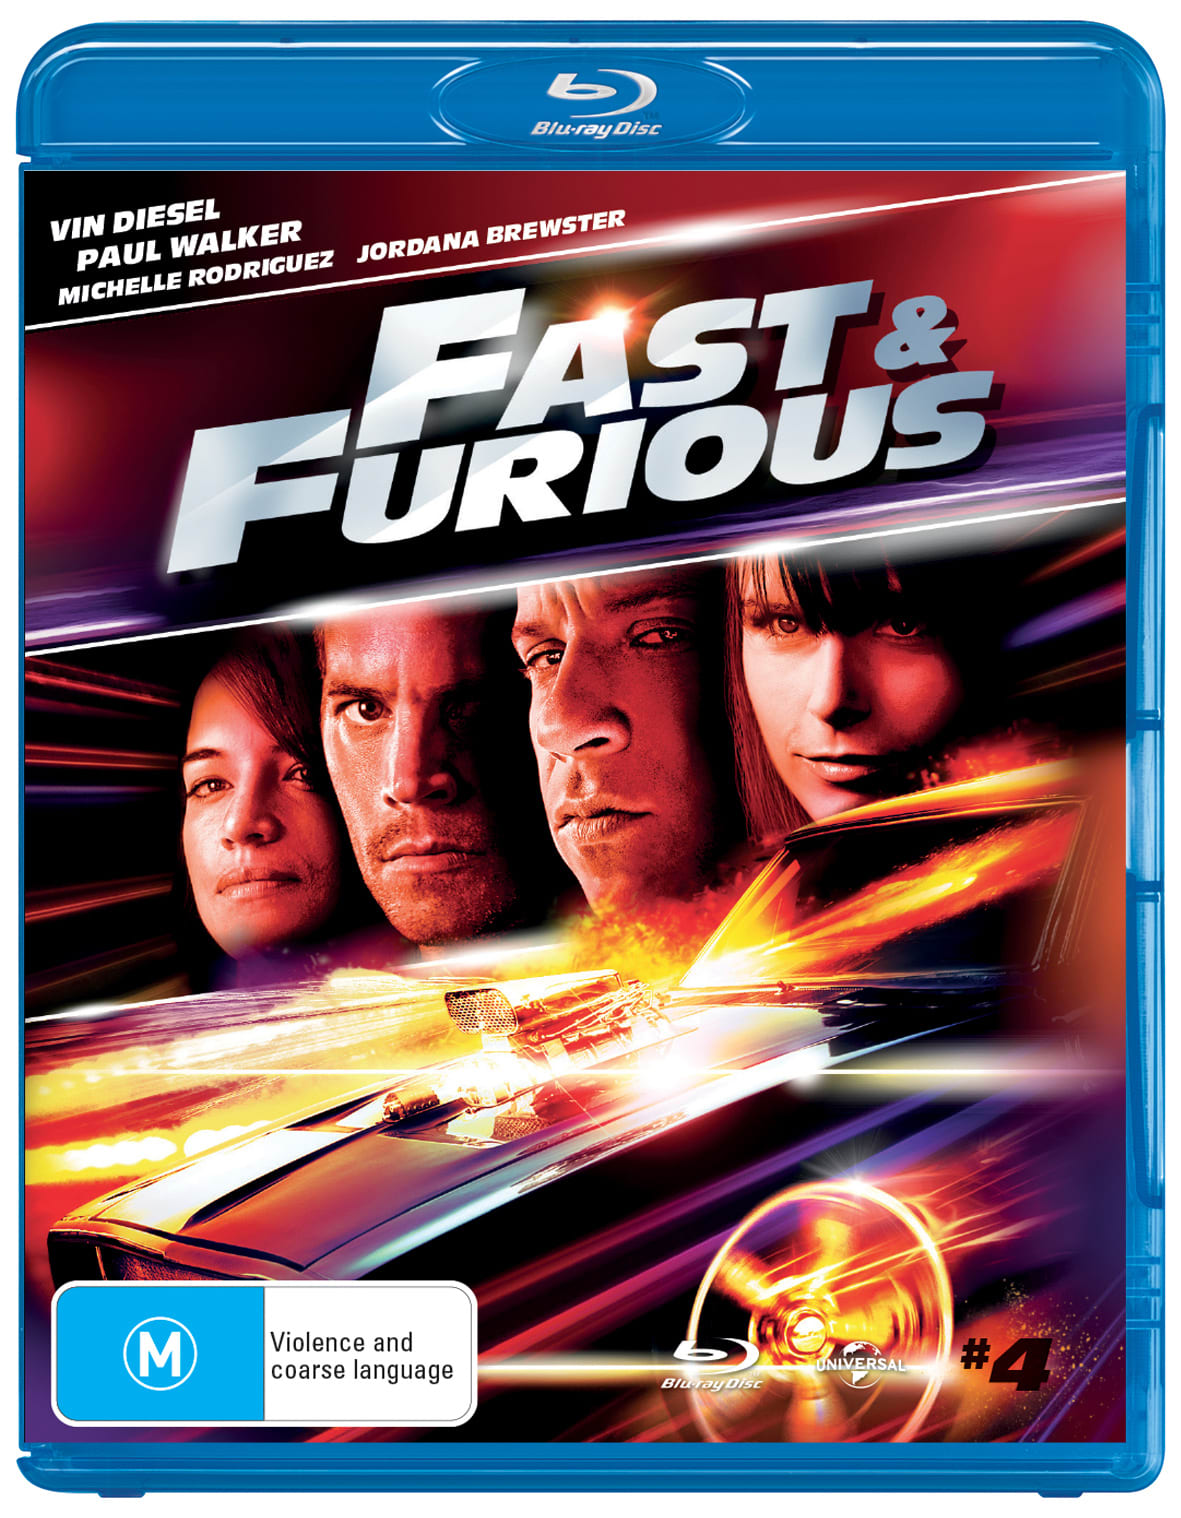 The Fast & the Furious 4                              [Blu-ray]